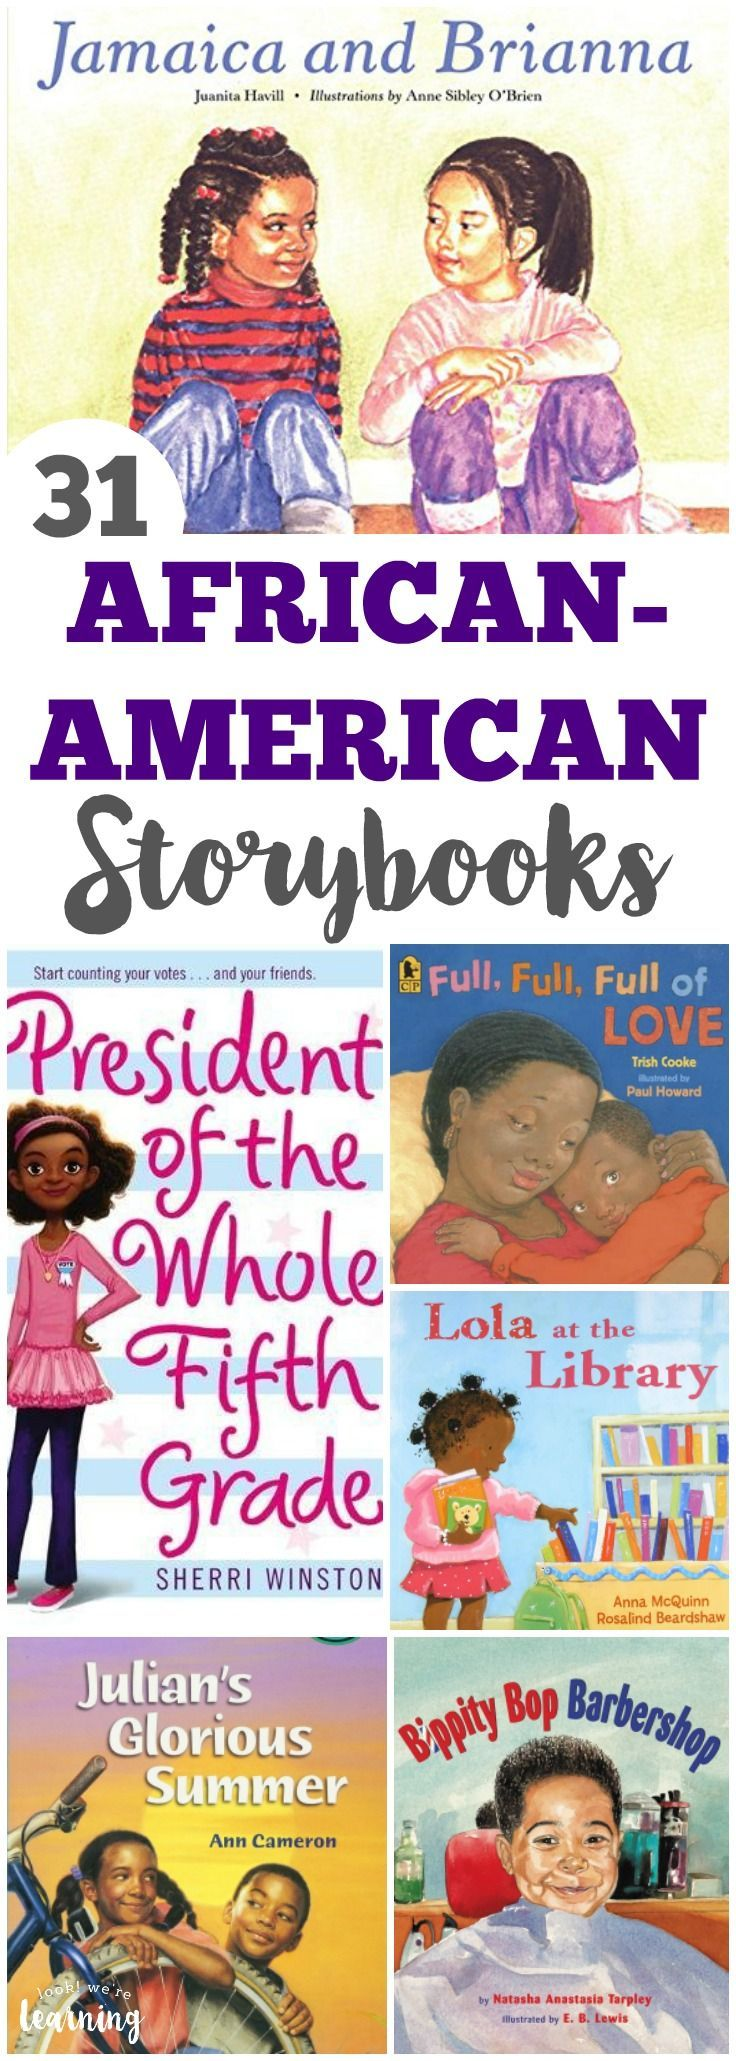 Read these wonderful African American story books for kids with your little ones! #reading #booksforkids #africanamerican